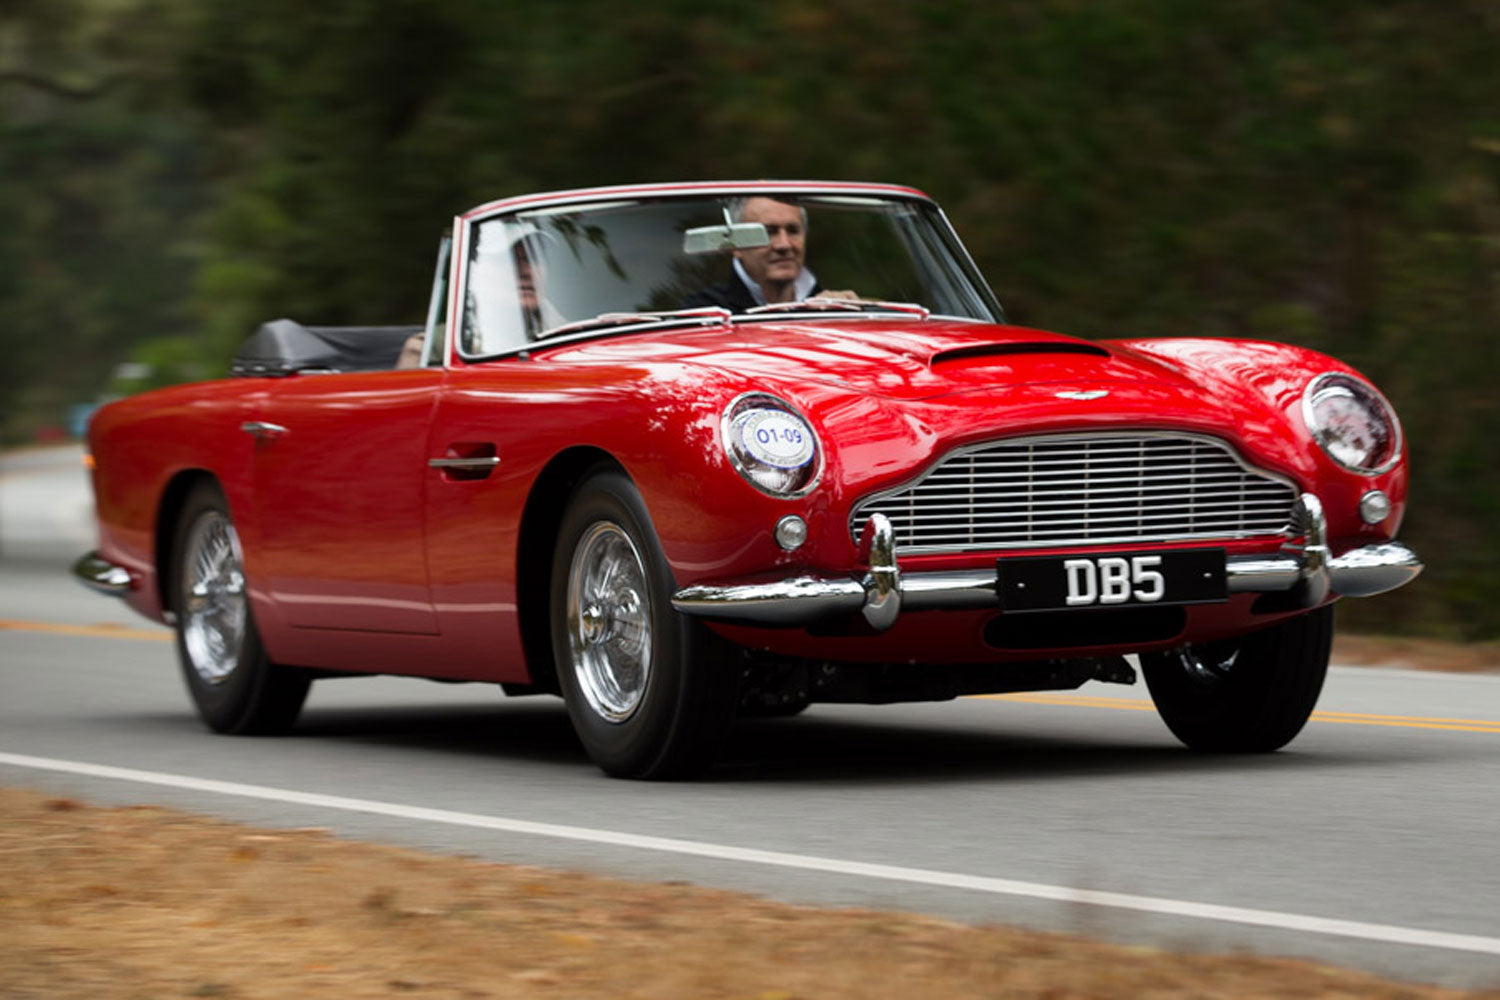 Aston Martin Db4 Db5 Db6 Dbs 6 Ceramic Coated Stainless Steel Manif Quicksilver Exhausts